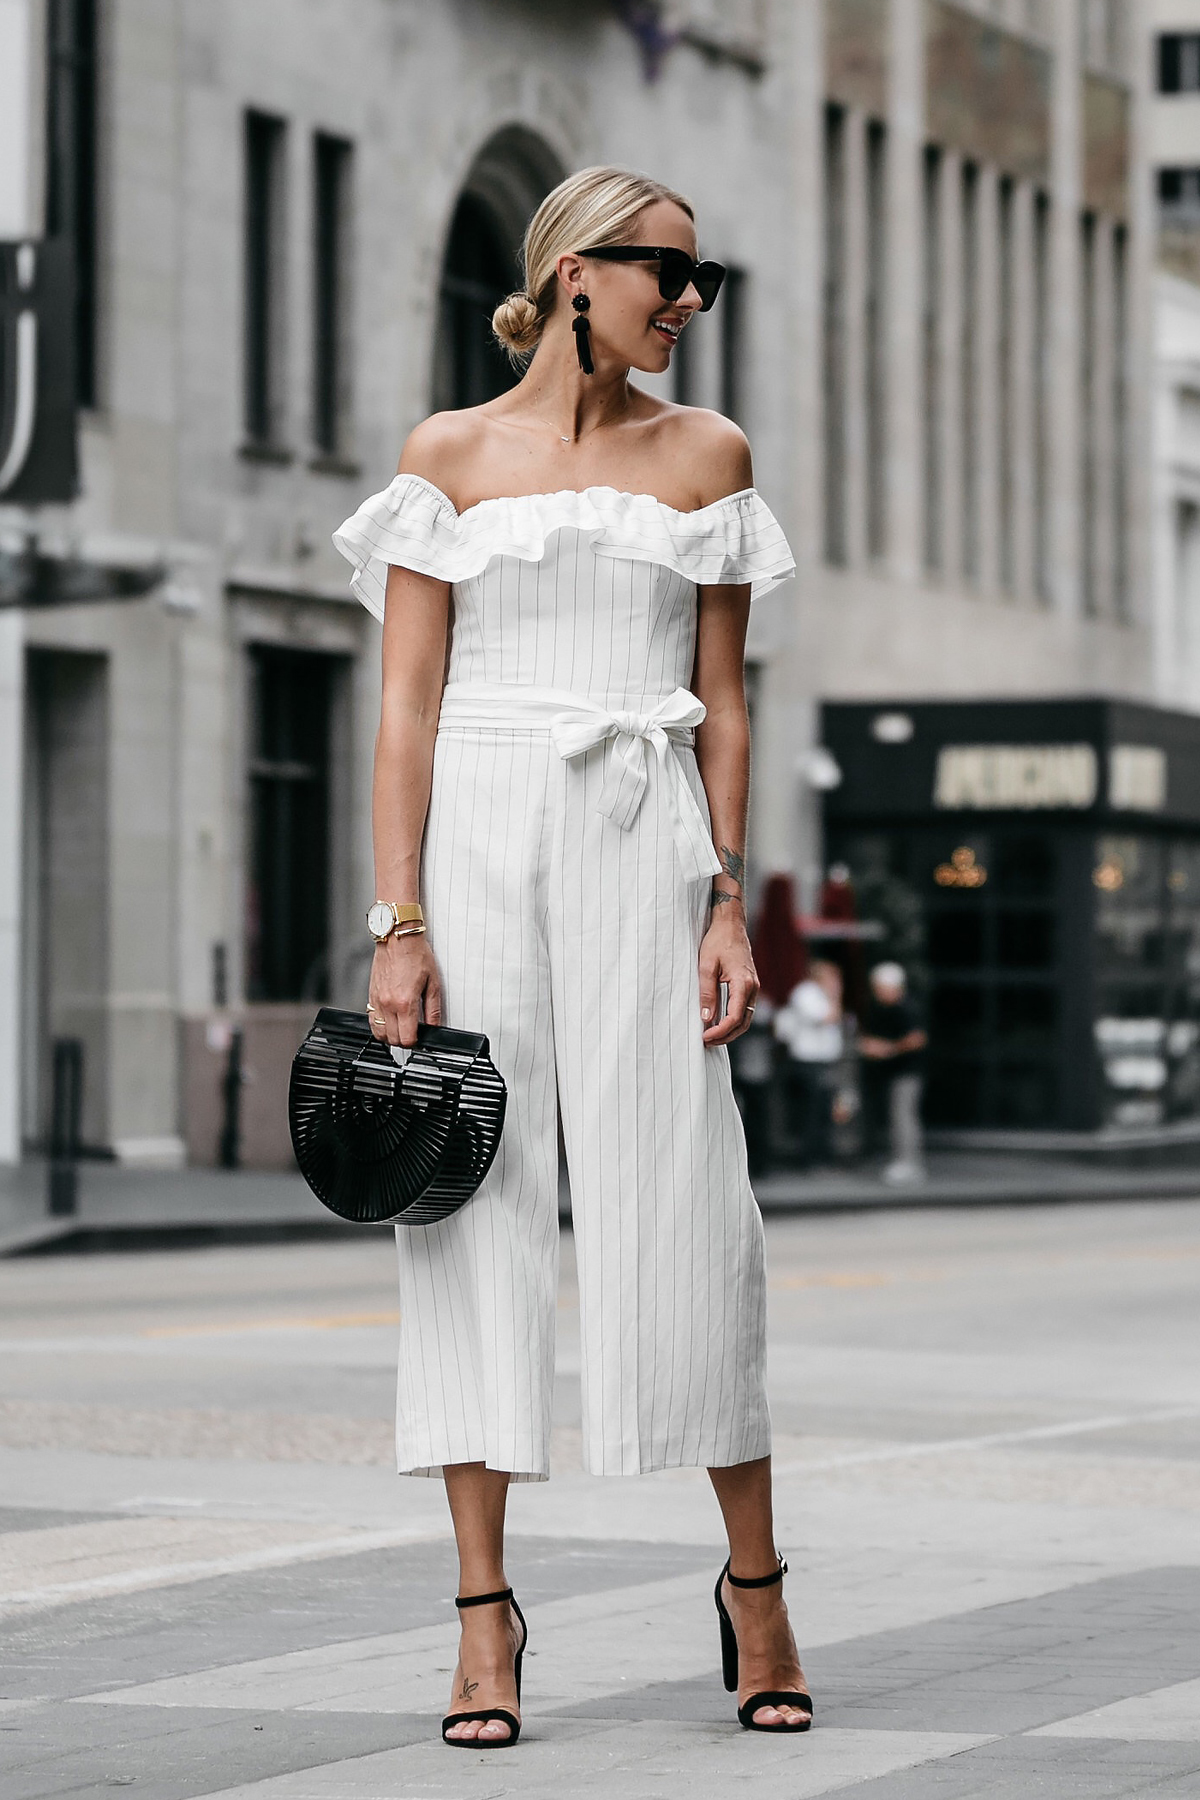 Blonde woman wearing Club Monaco off-the-shoulder ruffle white jumpsuit Cult Gaia Black Acrylic Ark Clutch Black Ankle Strap Heeled Sandals Black Tassel Earrings